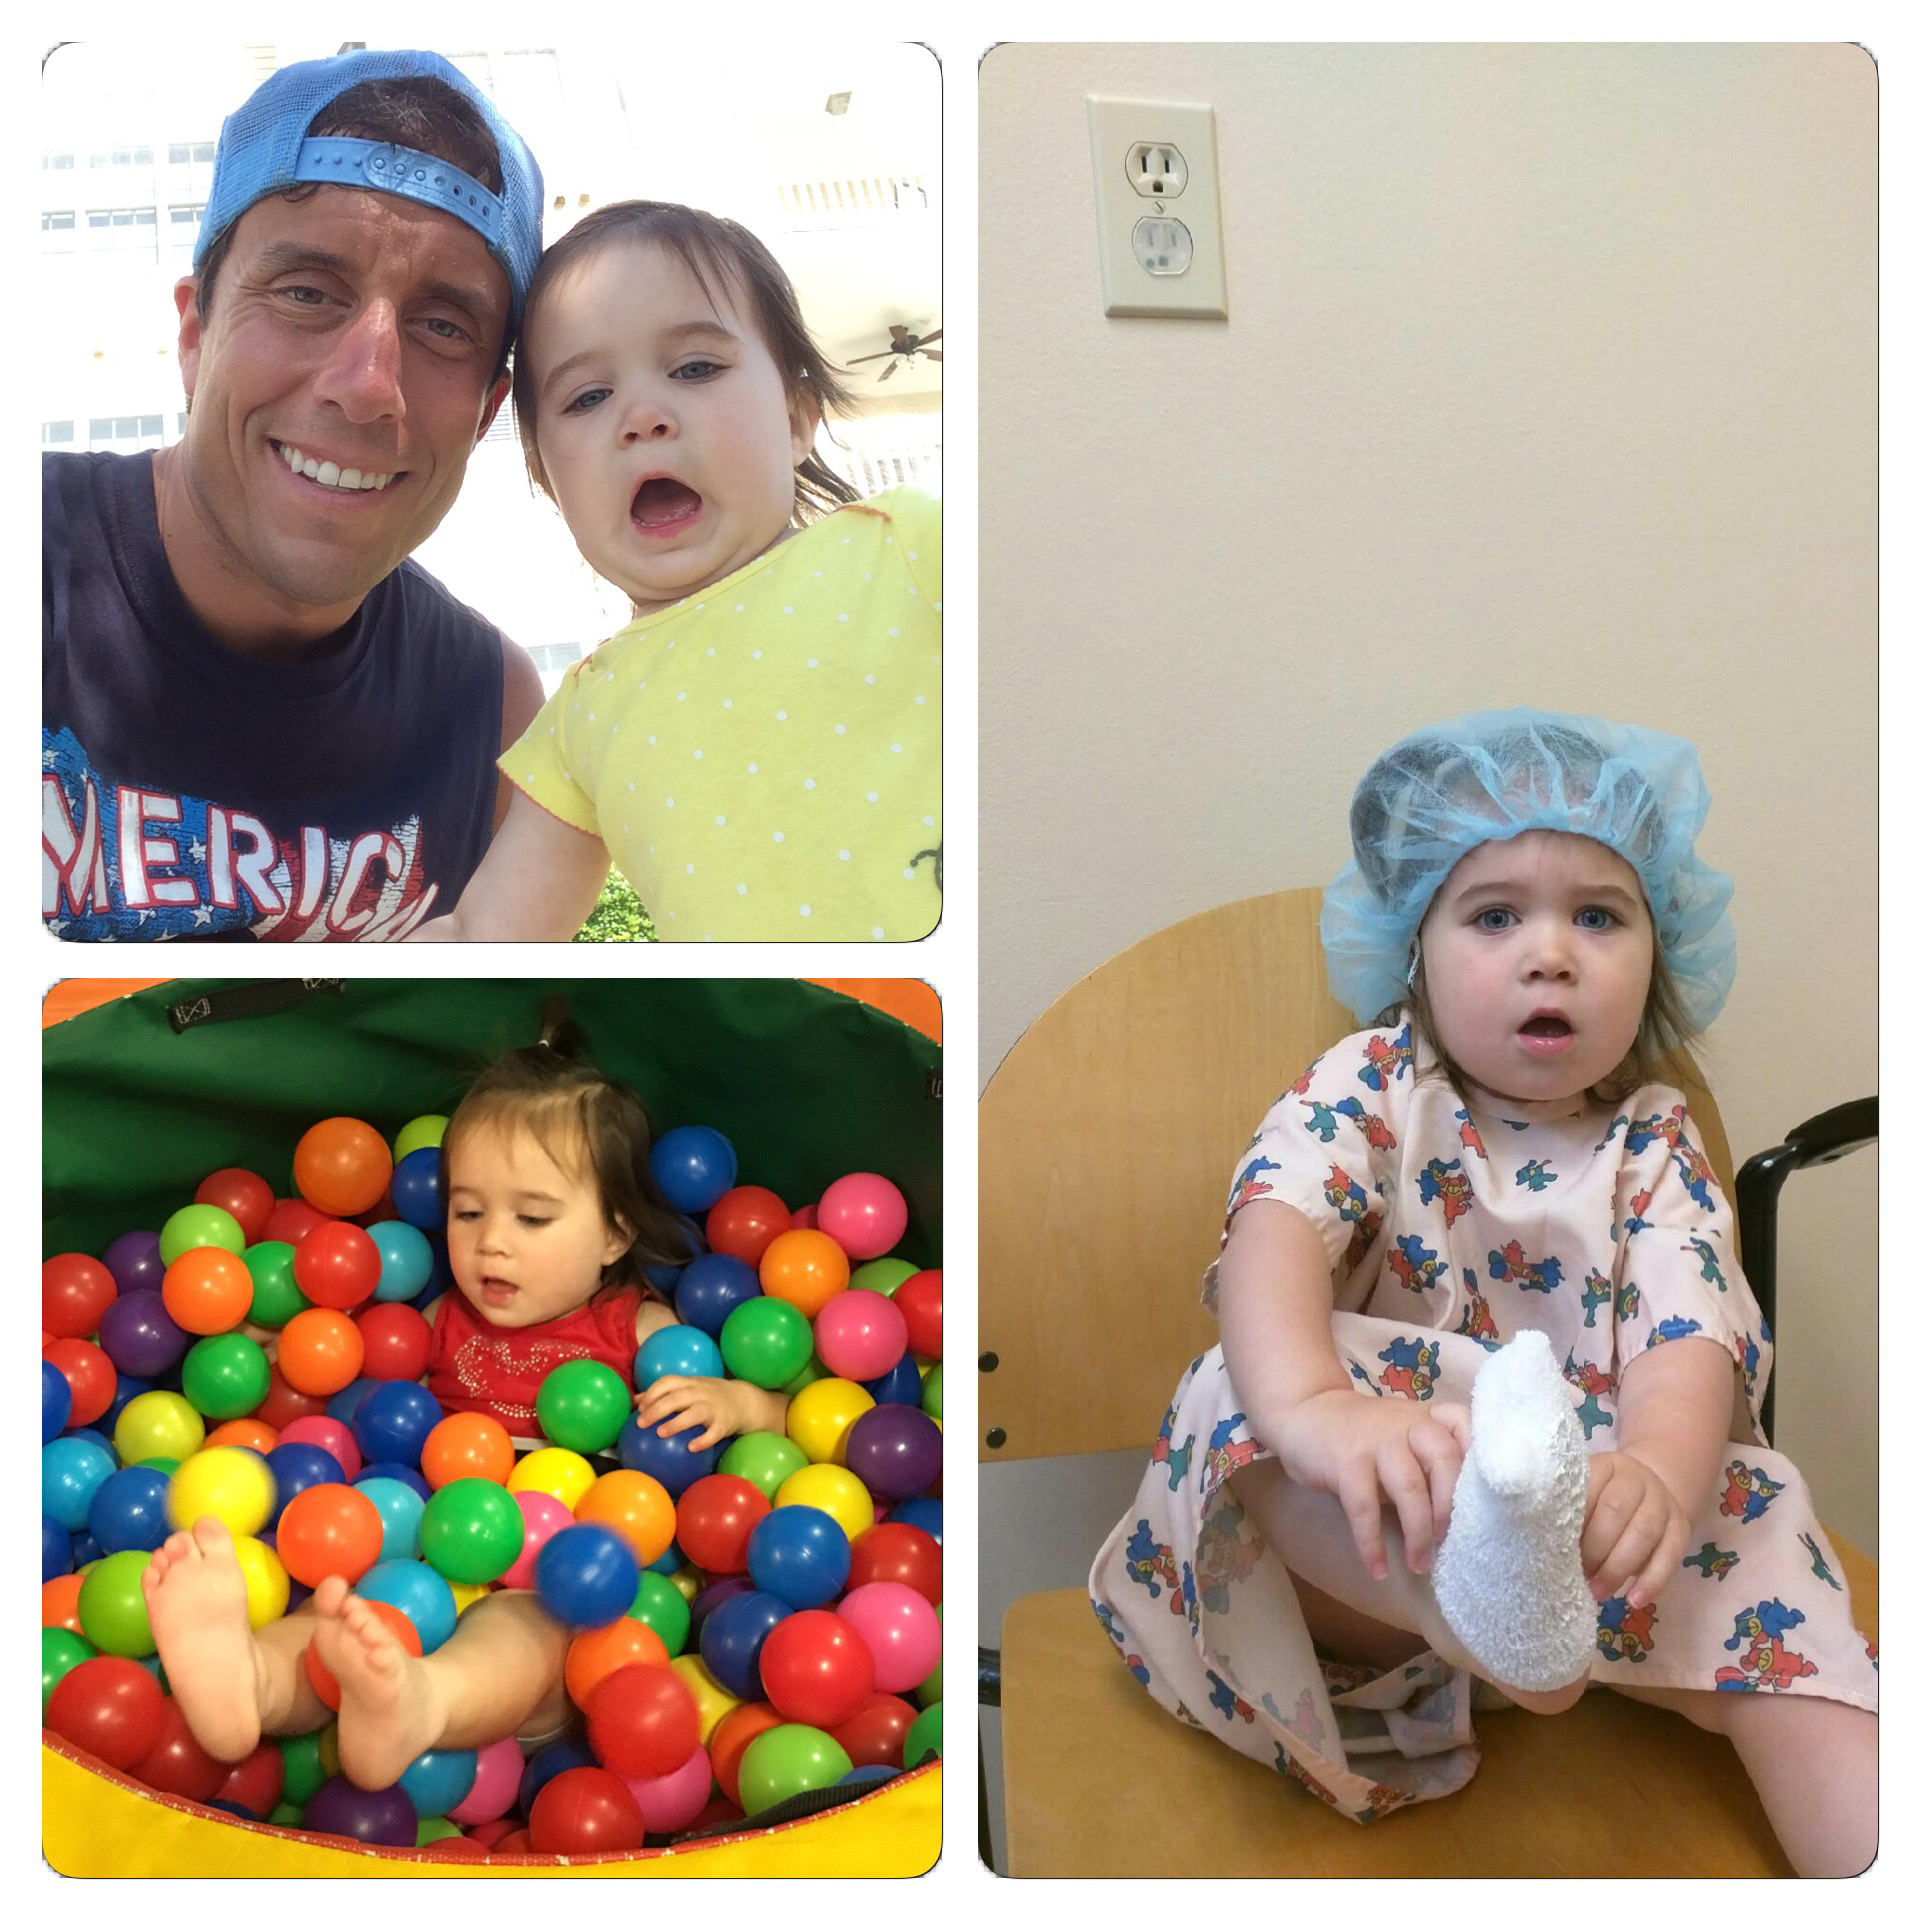 Mikayla will turn two on Monday. The photo in the top left is of her and I when she was in Myrtle Beach in June. The photo on the right is her at the hospital today right before she got tubes put in her ears.